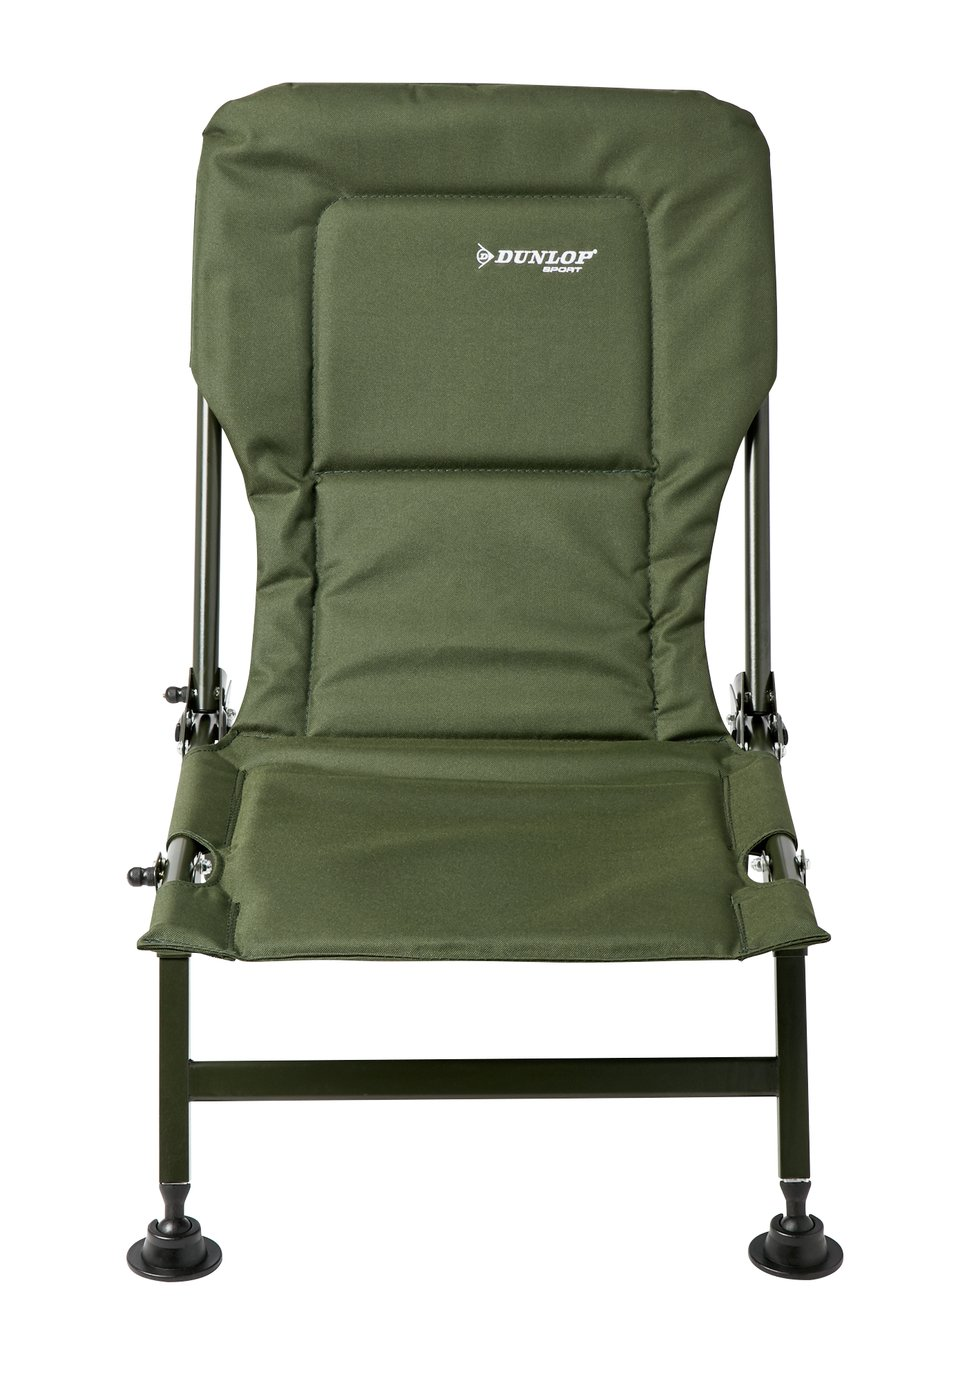 Dunlop Fishing Carp Chair.